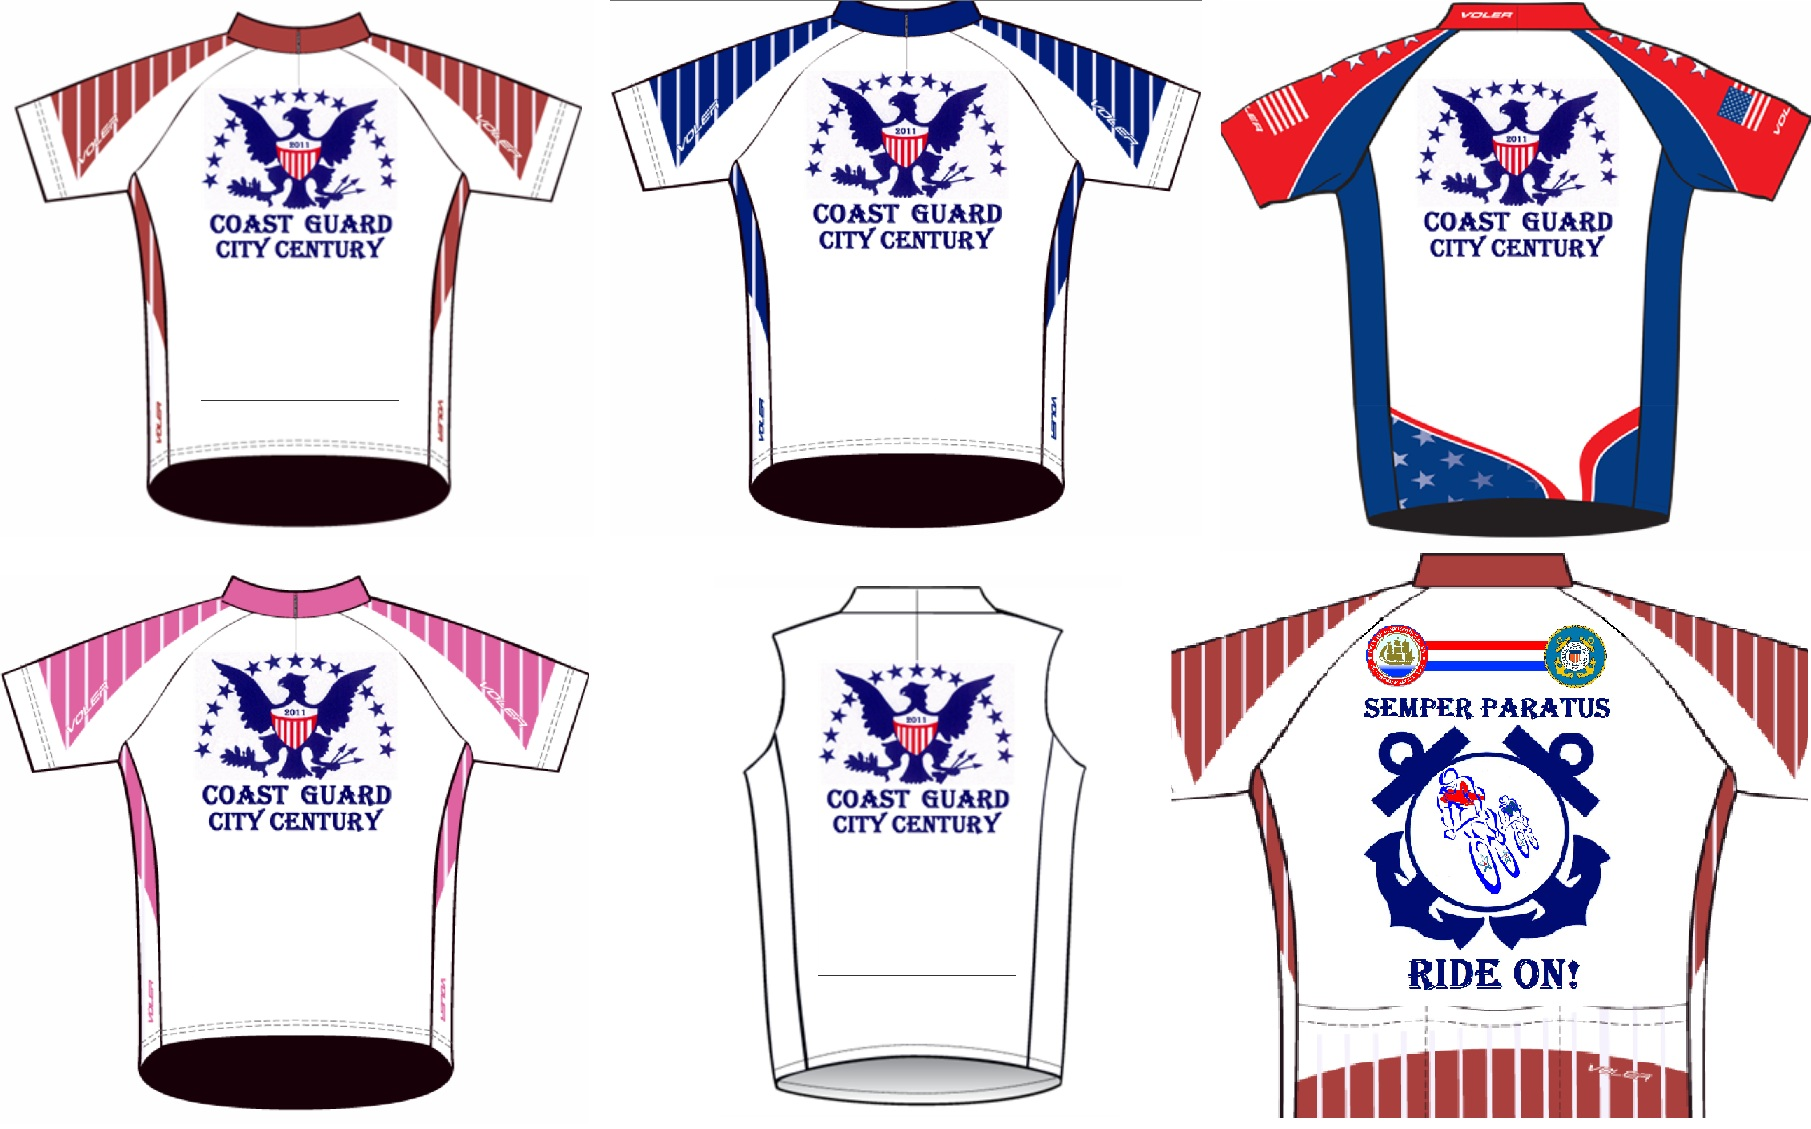 2011 CGCC 5 Jersey Options - Front & Back